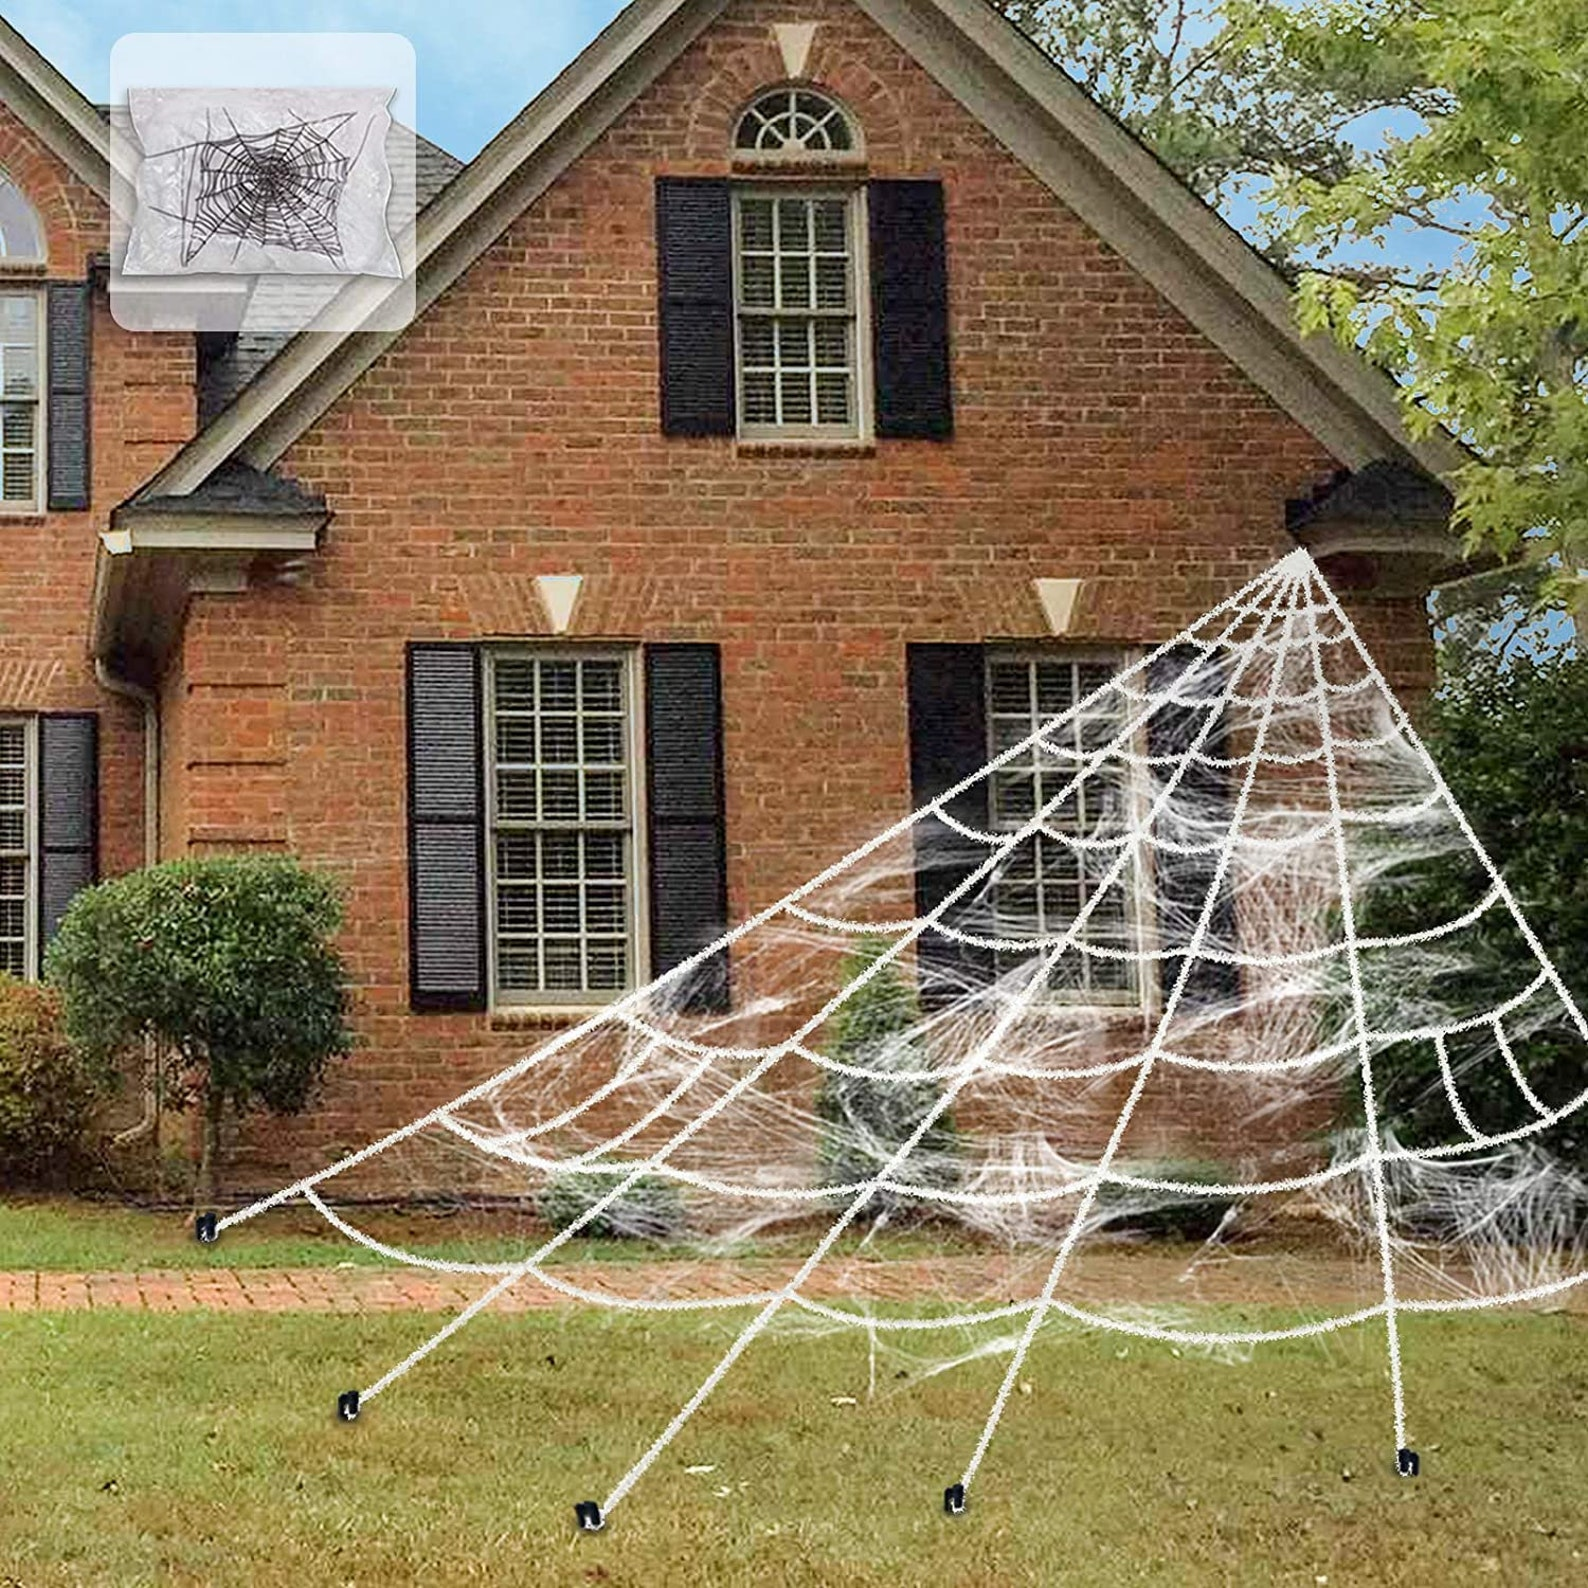 Front yard Halloween Home Decor - Giant Spider Web